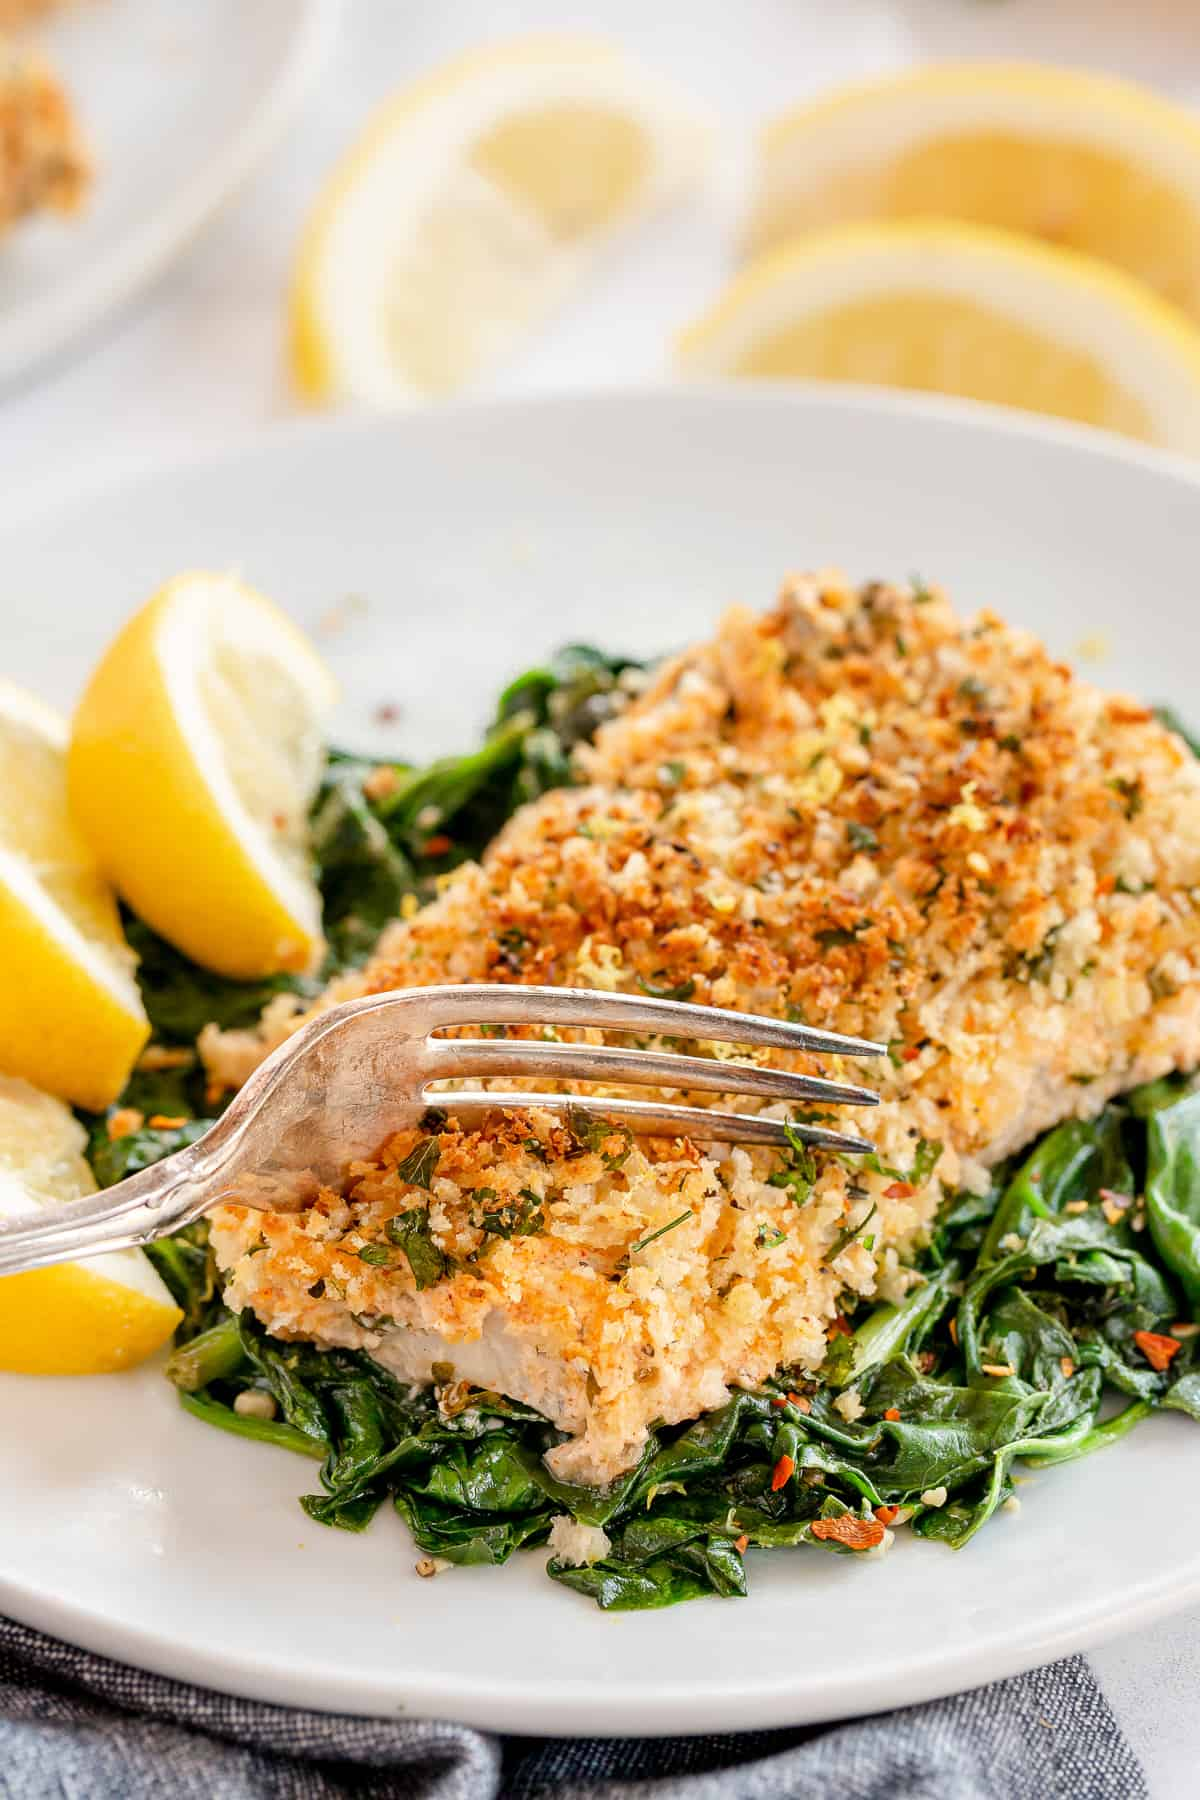 A fork presses down into Lemon Basil Cod on a bed of spinach.